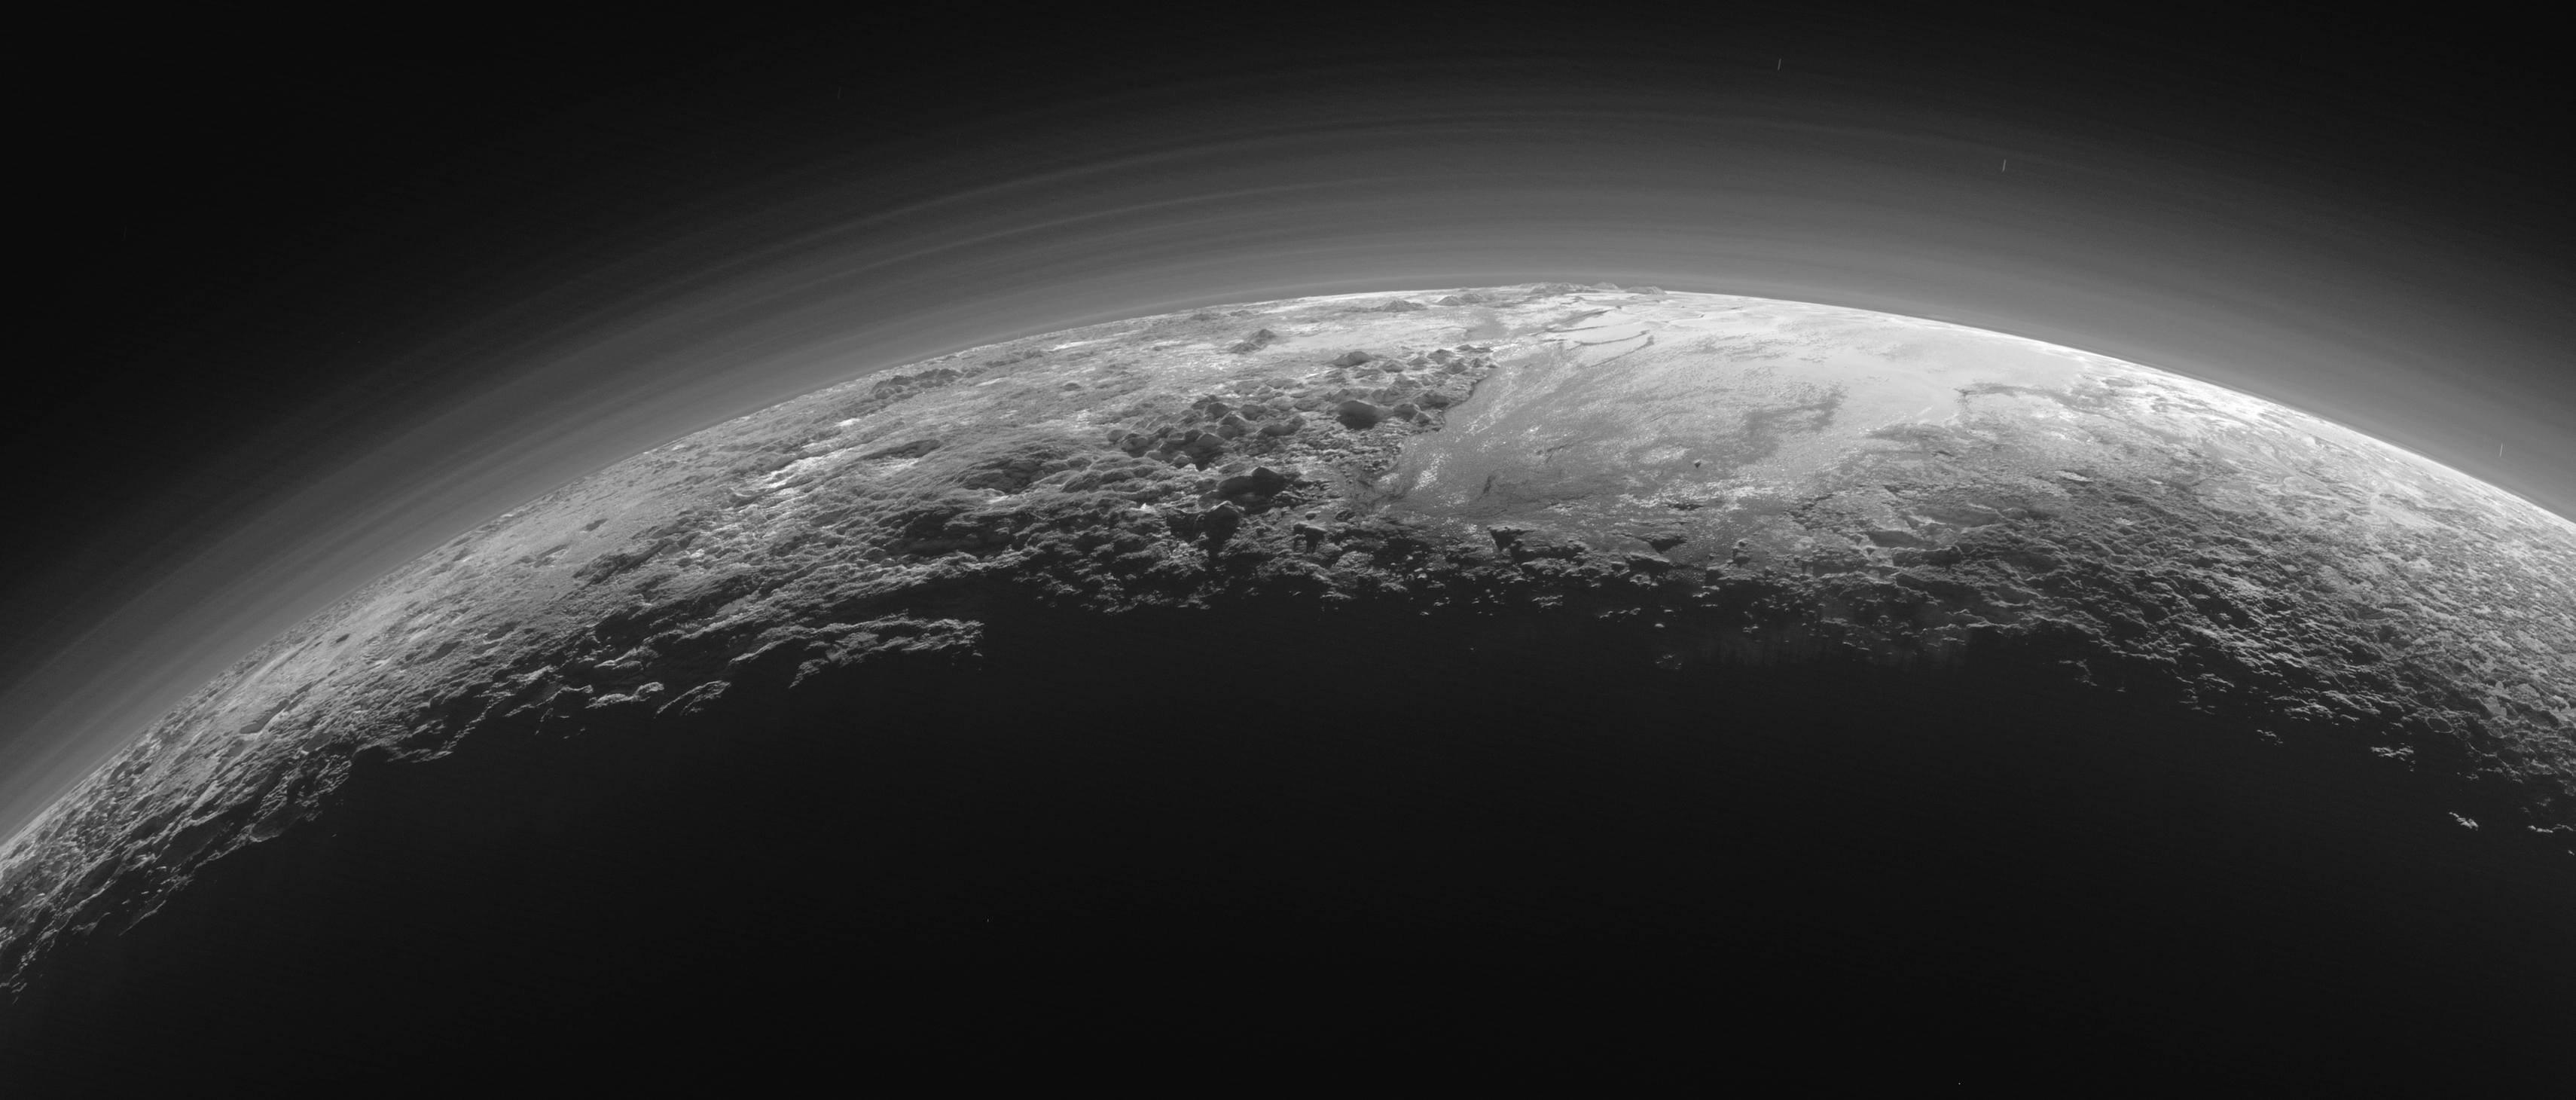 Sunset over the mountains of Pluto